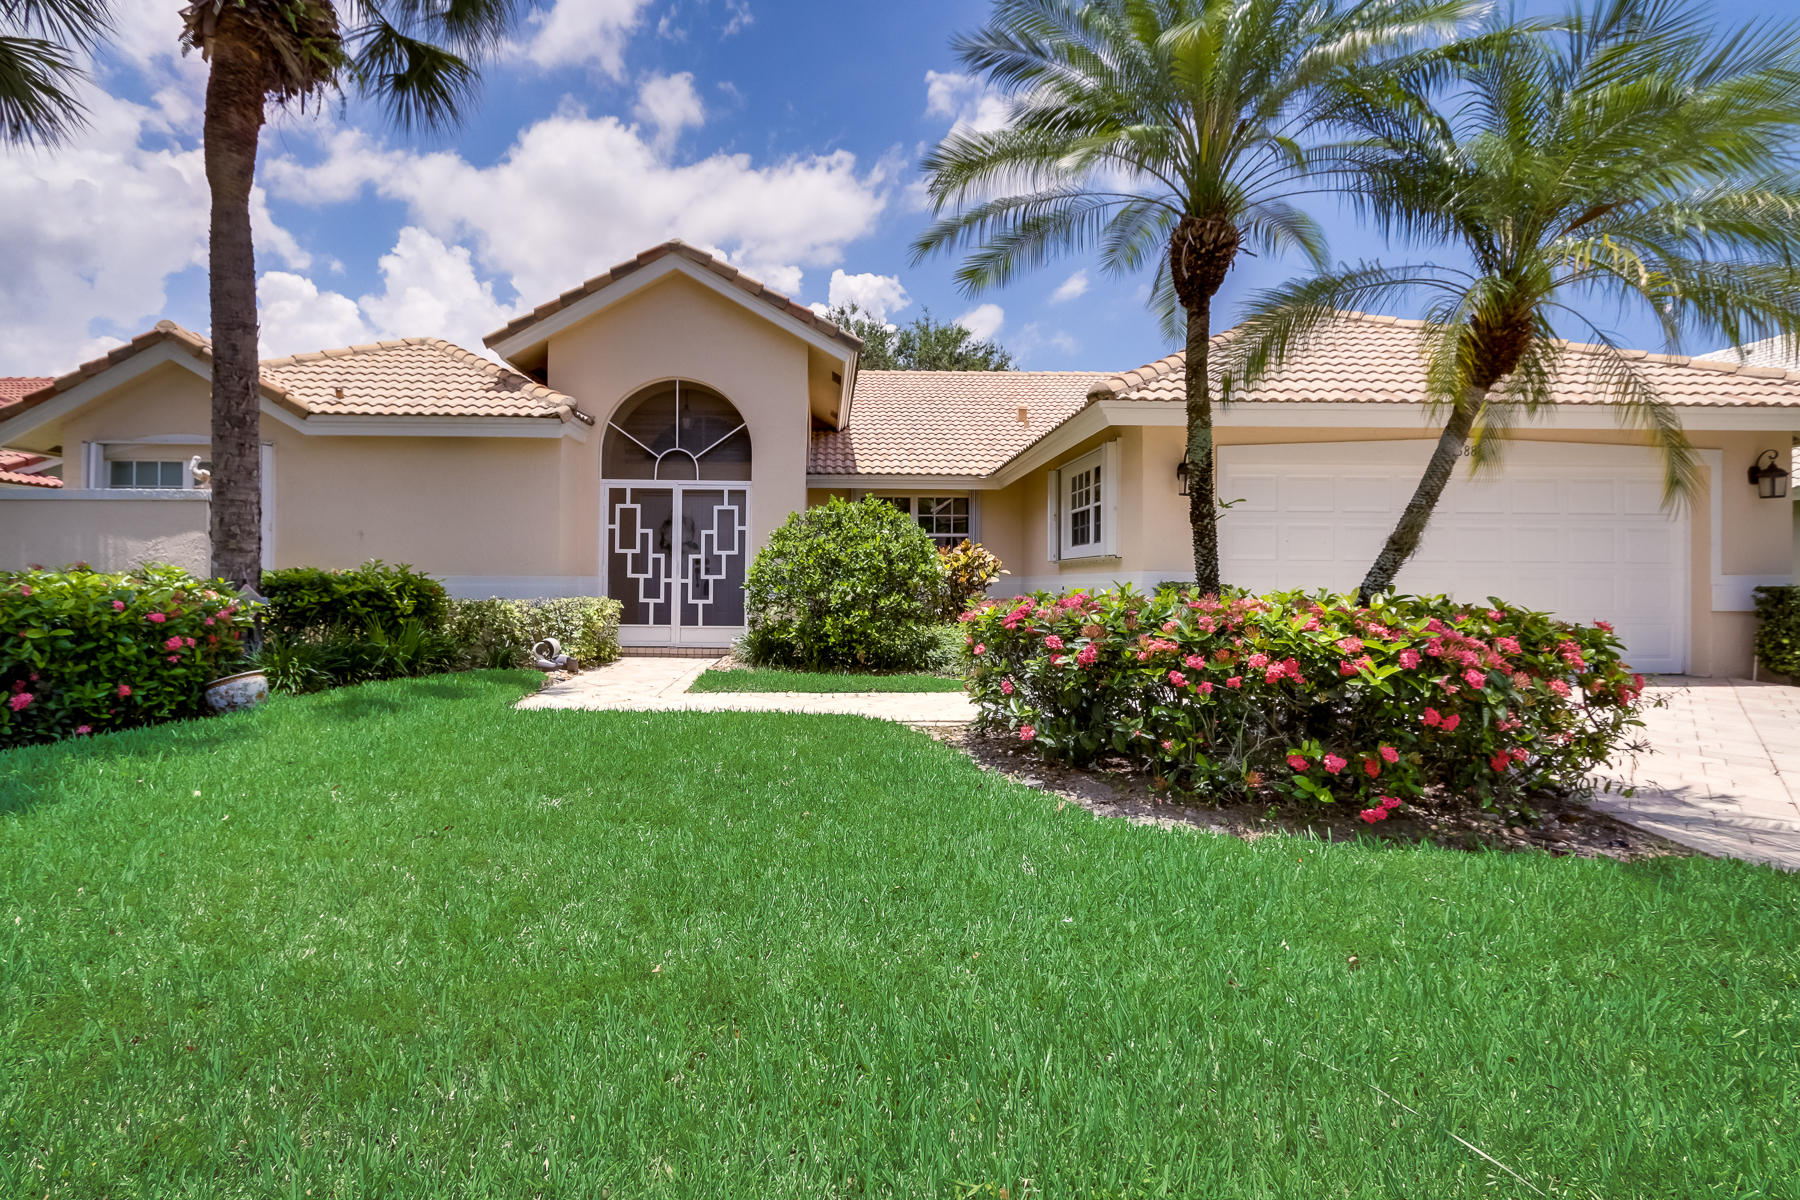 Home for sale in Lakeridge Greens Boynton Beach Florida